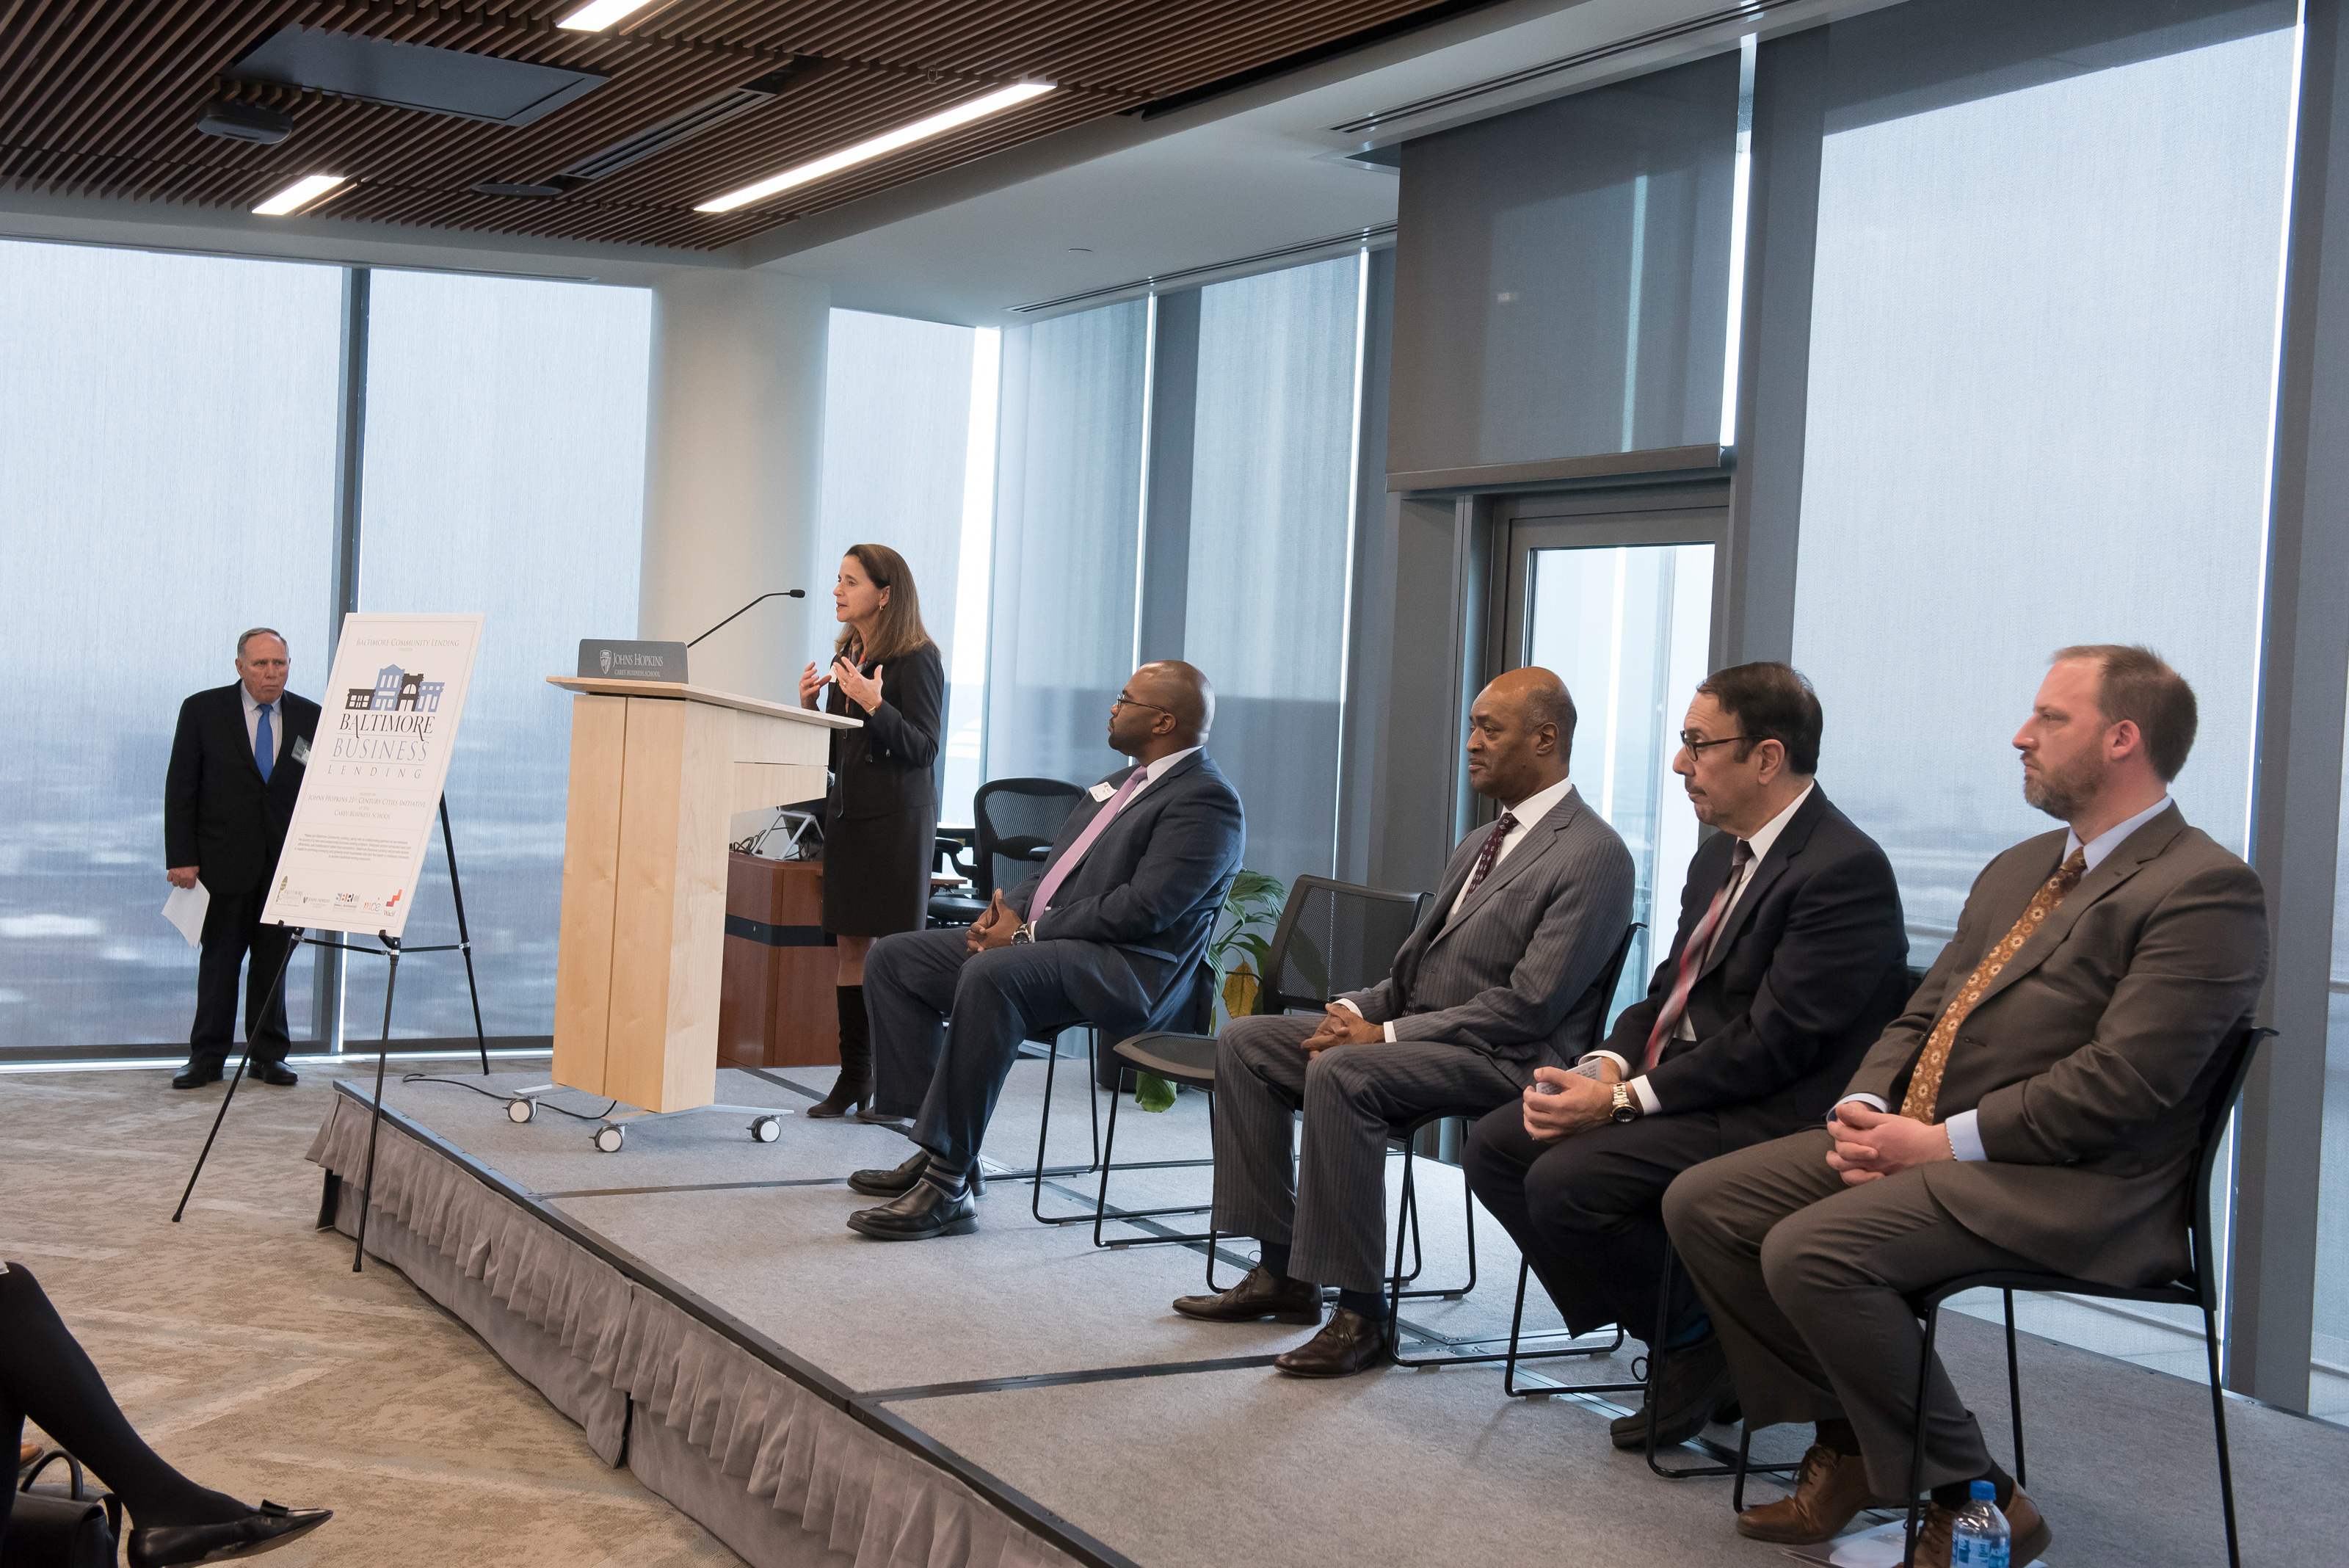 Baltimore Business Lending Launch Event with Mary Miller at podium